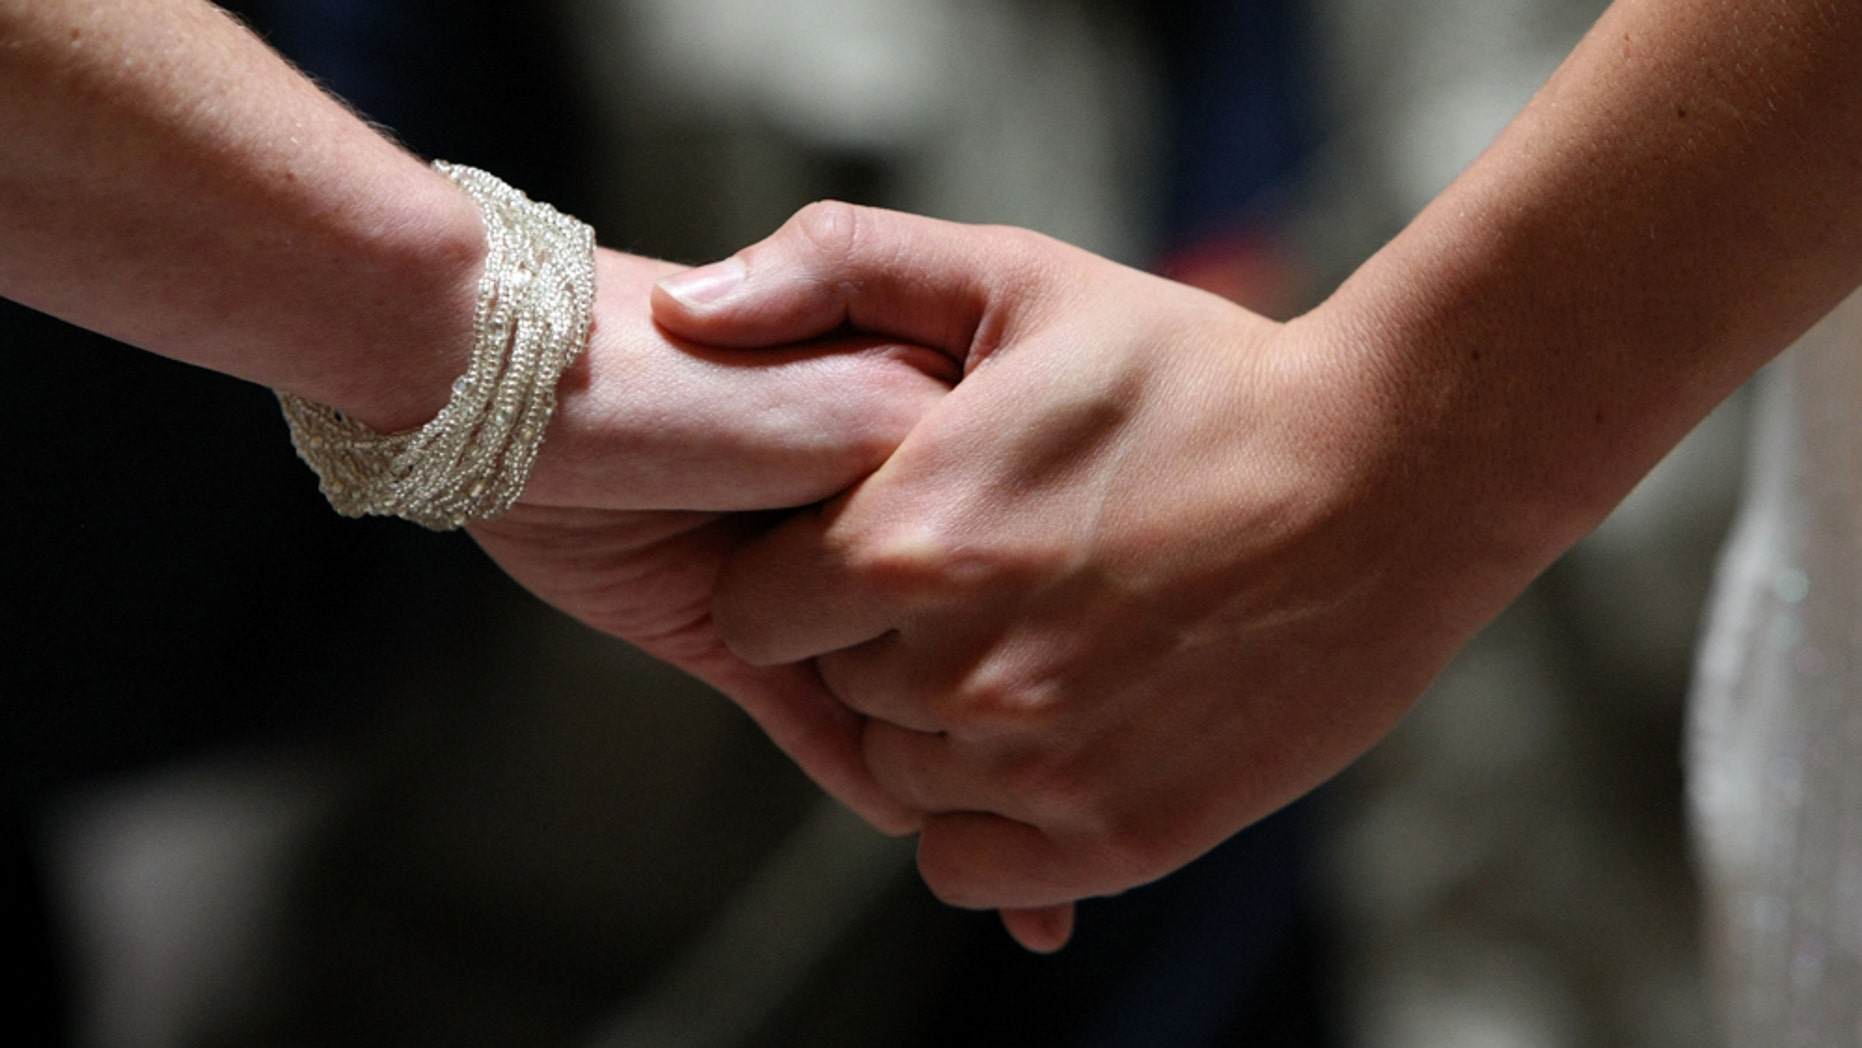 SAN FRANCISCO - JUNE 17:  Same-sex couple Amber Weiss and Sharon Papo hold hands as they get married at San Francisco City Hall June 17, 2008 in San Francisco, California. Same-sex couples throughout California are rushing to get married as counties begin issuing marriage license after a State Supreme Court ruling to allow same-sex marriage.  (Photo by Justin Sullivan/Getty Images)